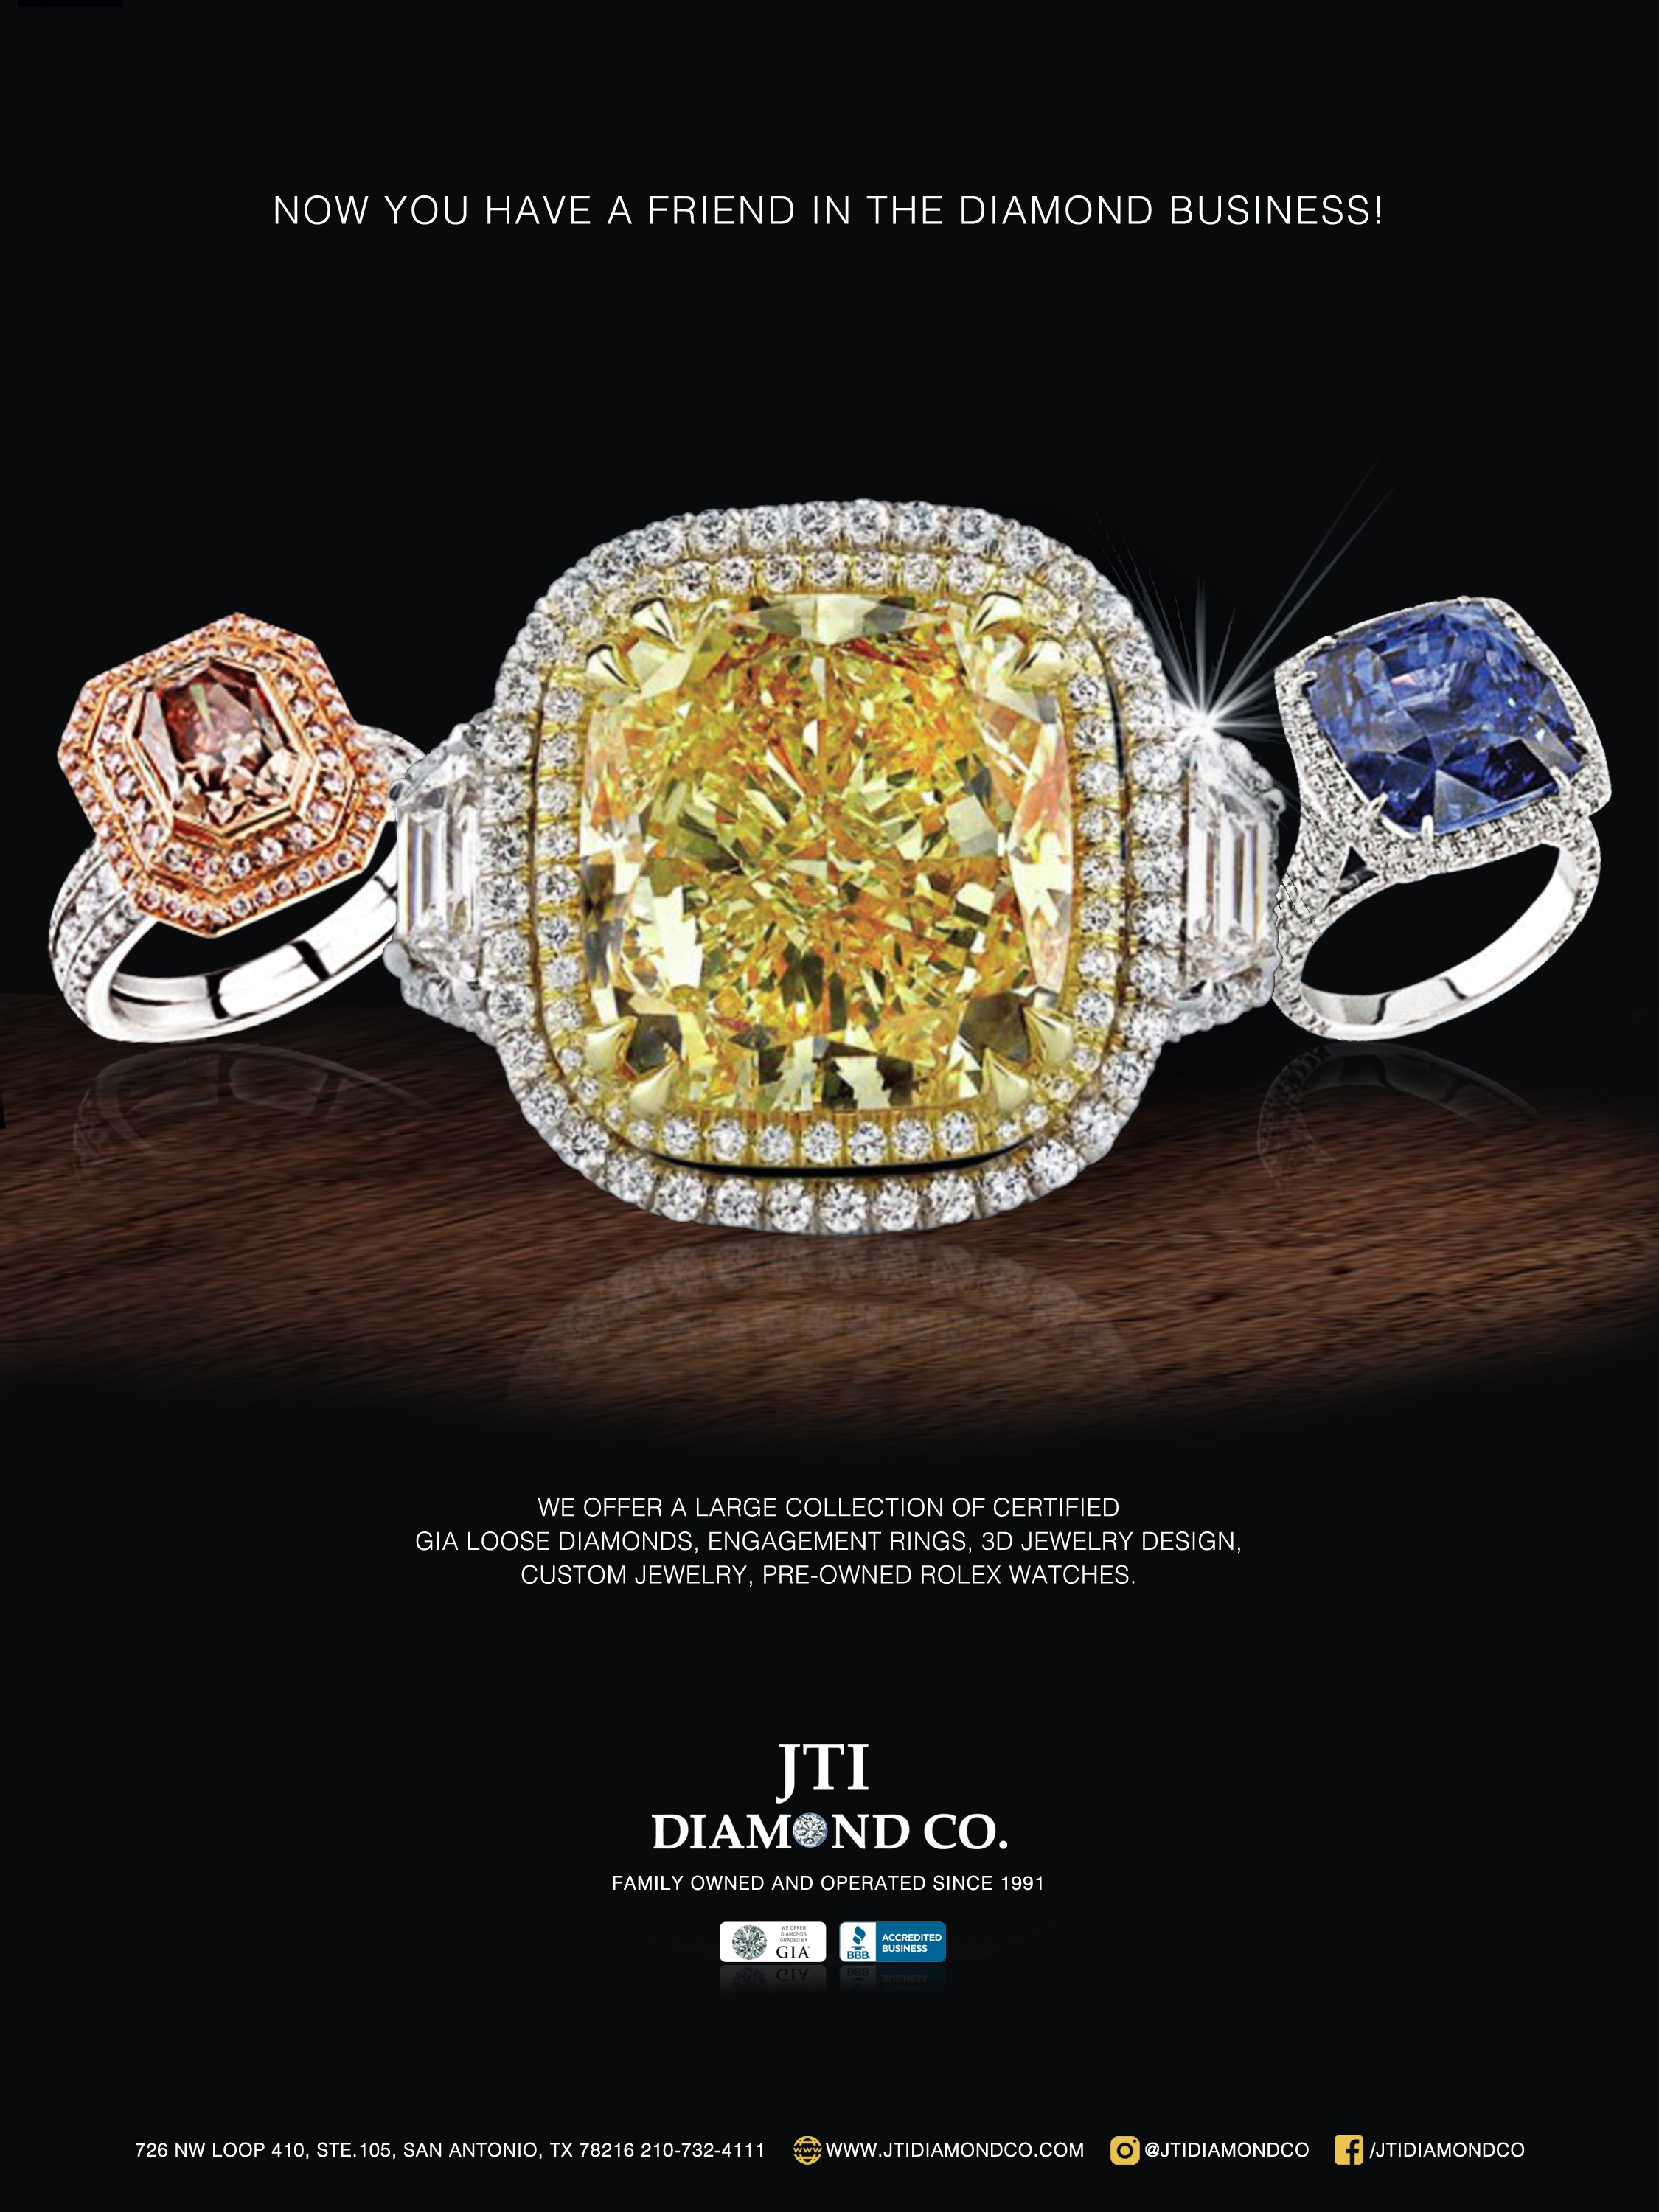 I want to create a custom magazine AD for jewelry store